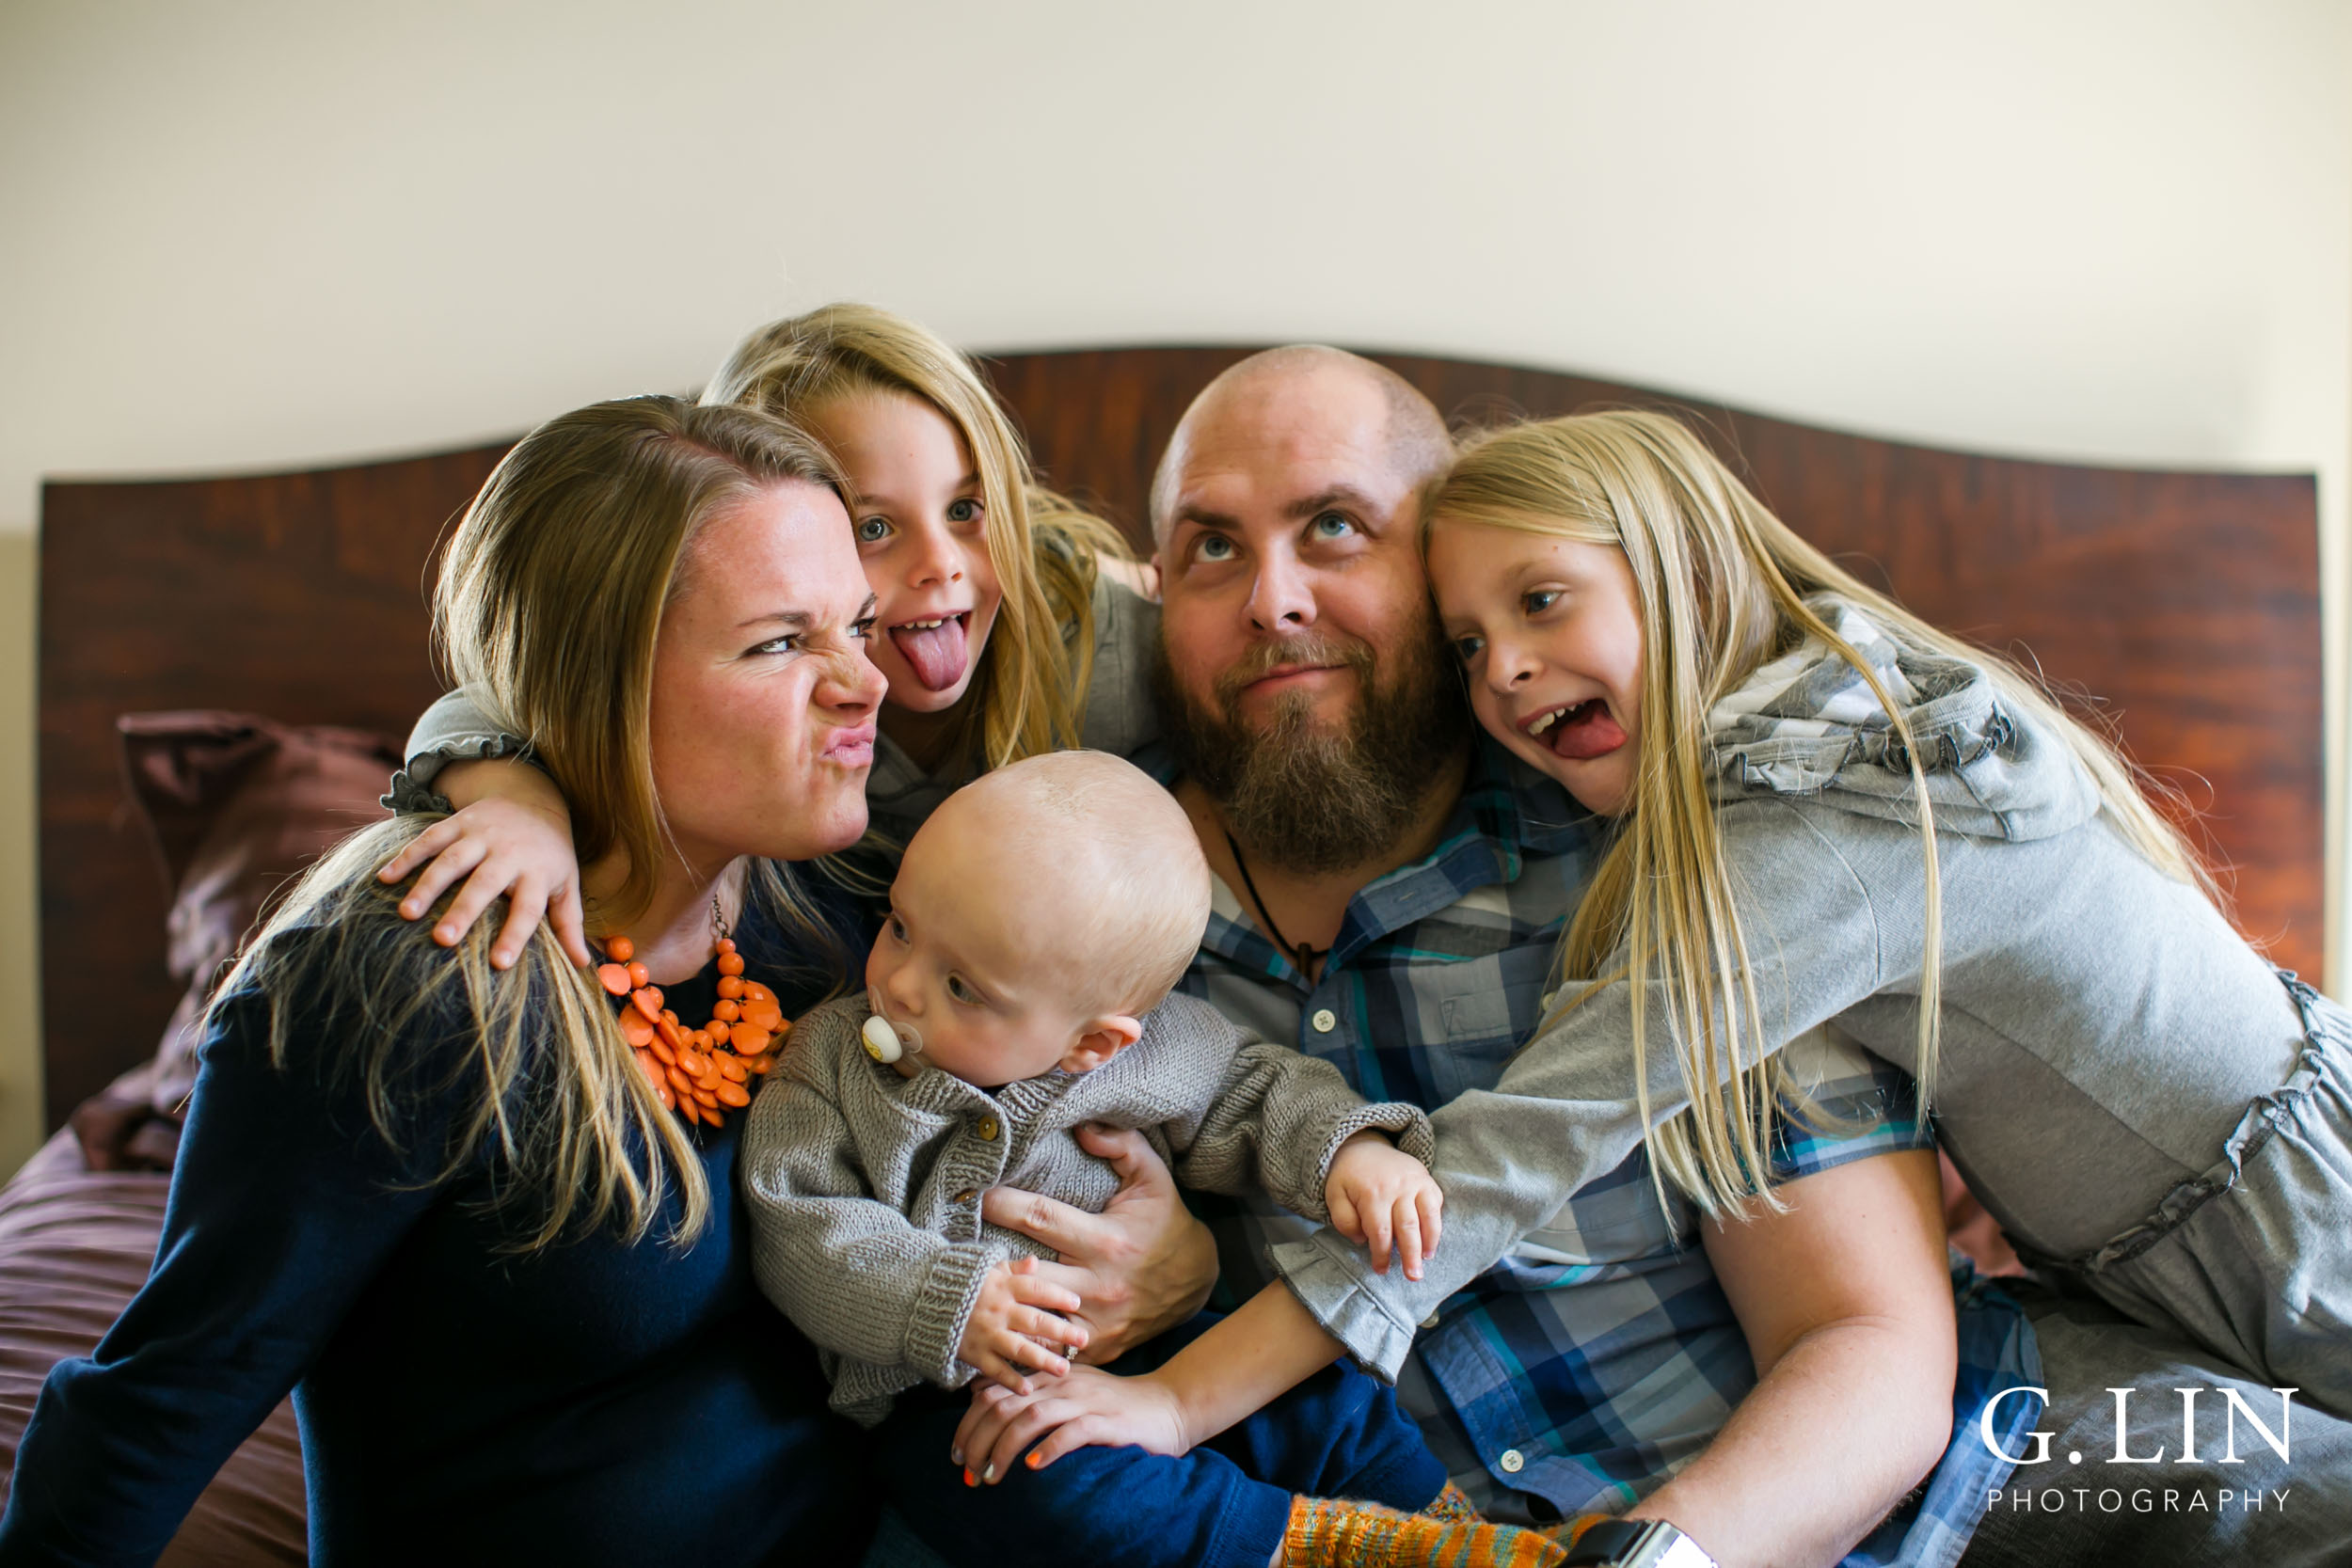 Silly faces made by family for portrait session